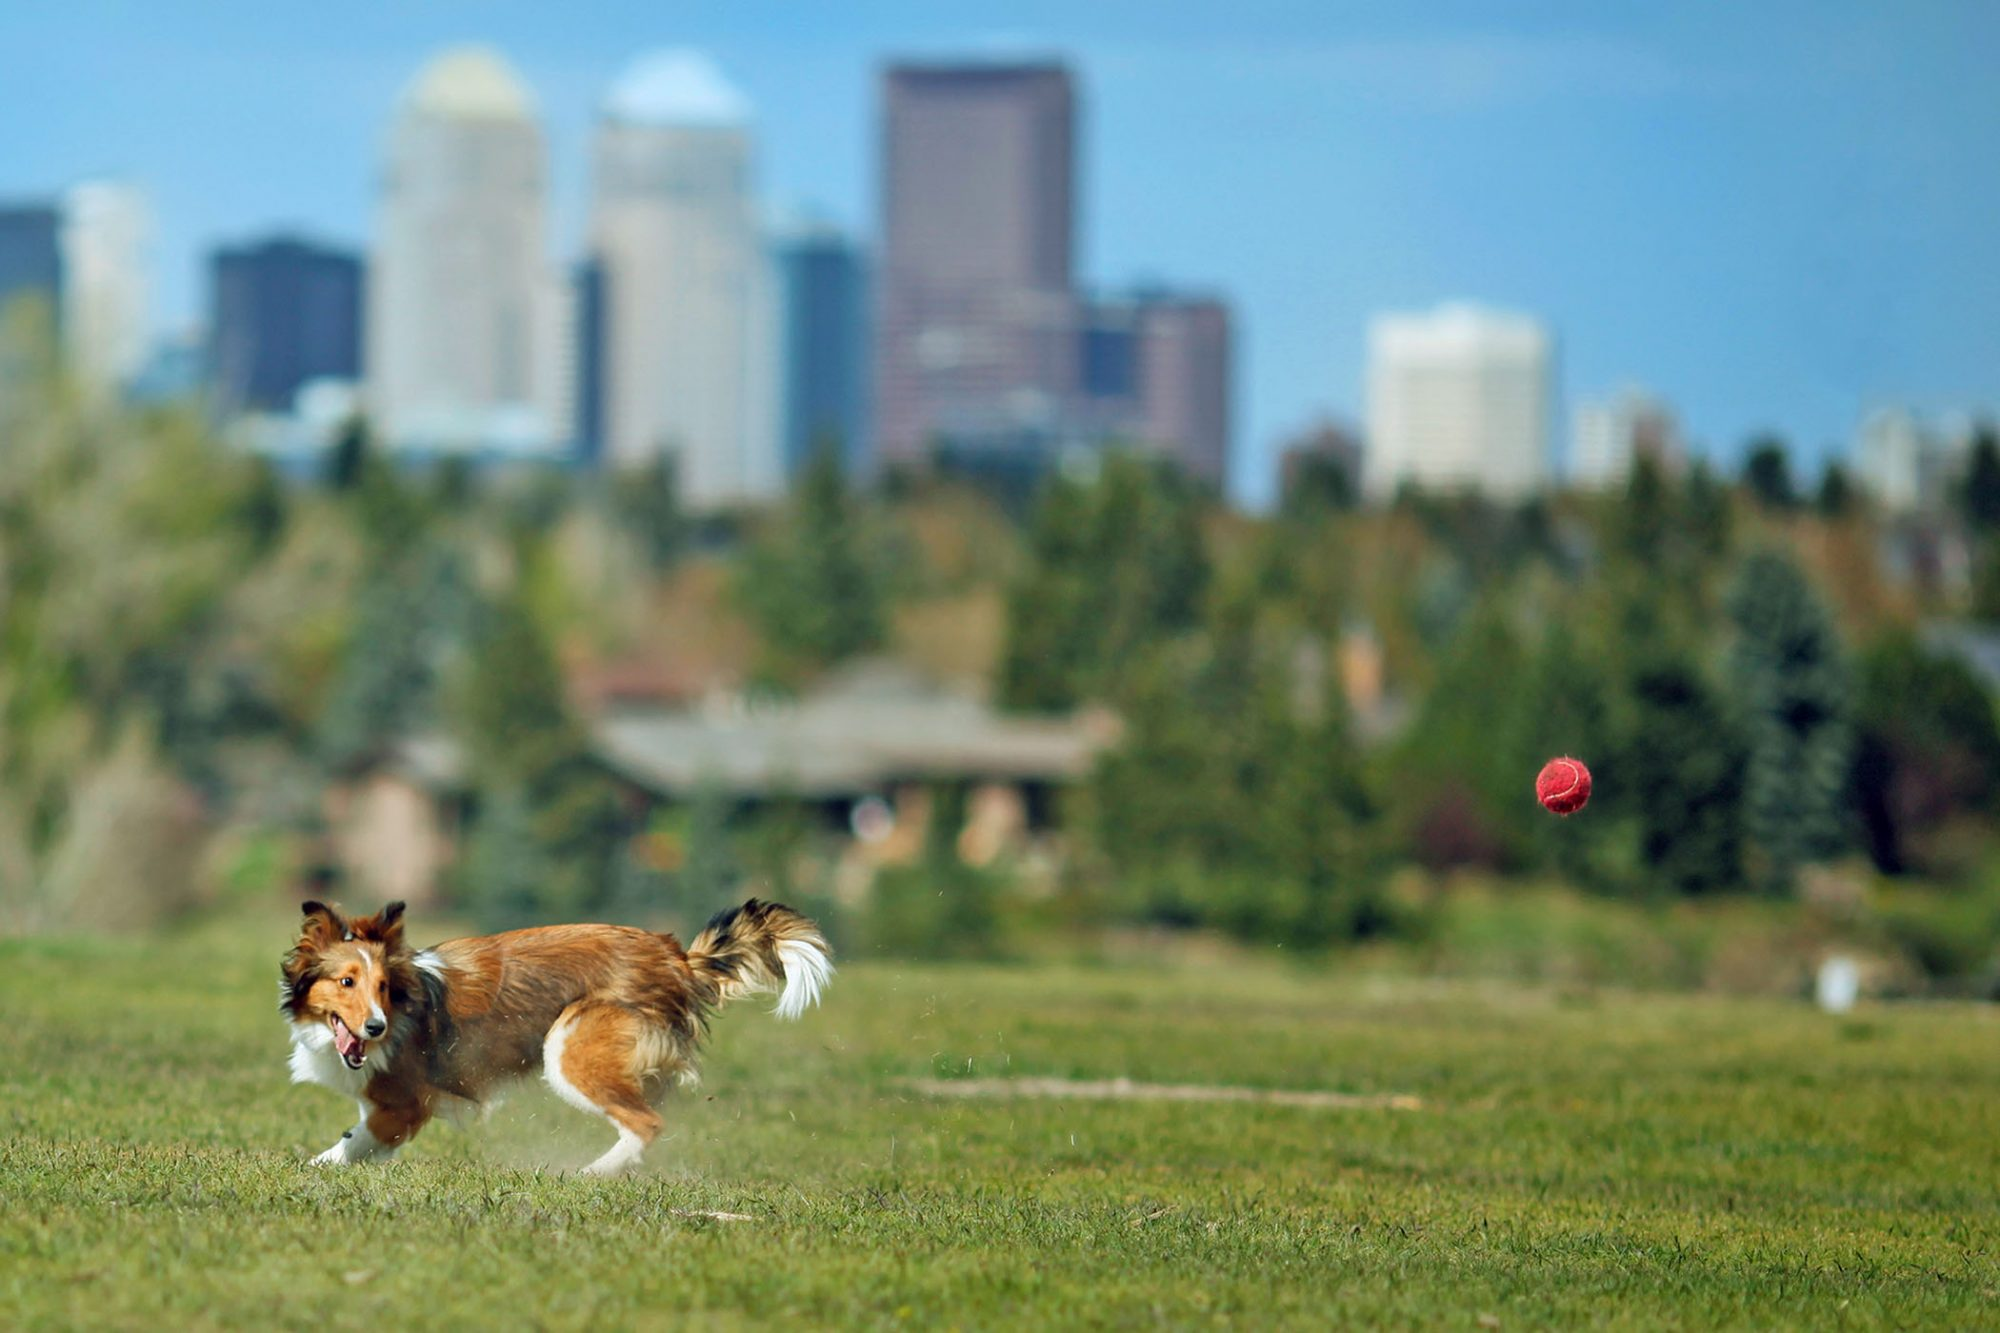 dog playing in dog park with city scape in the distance